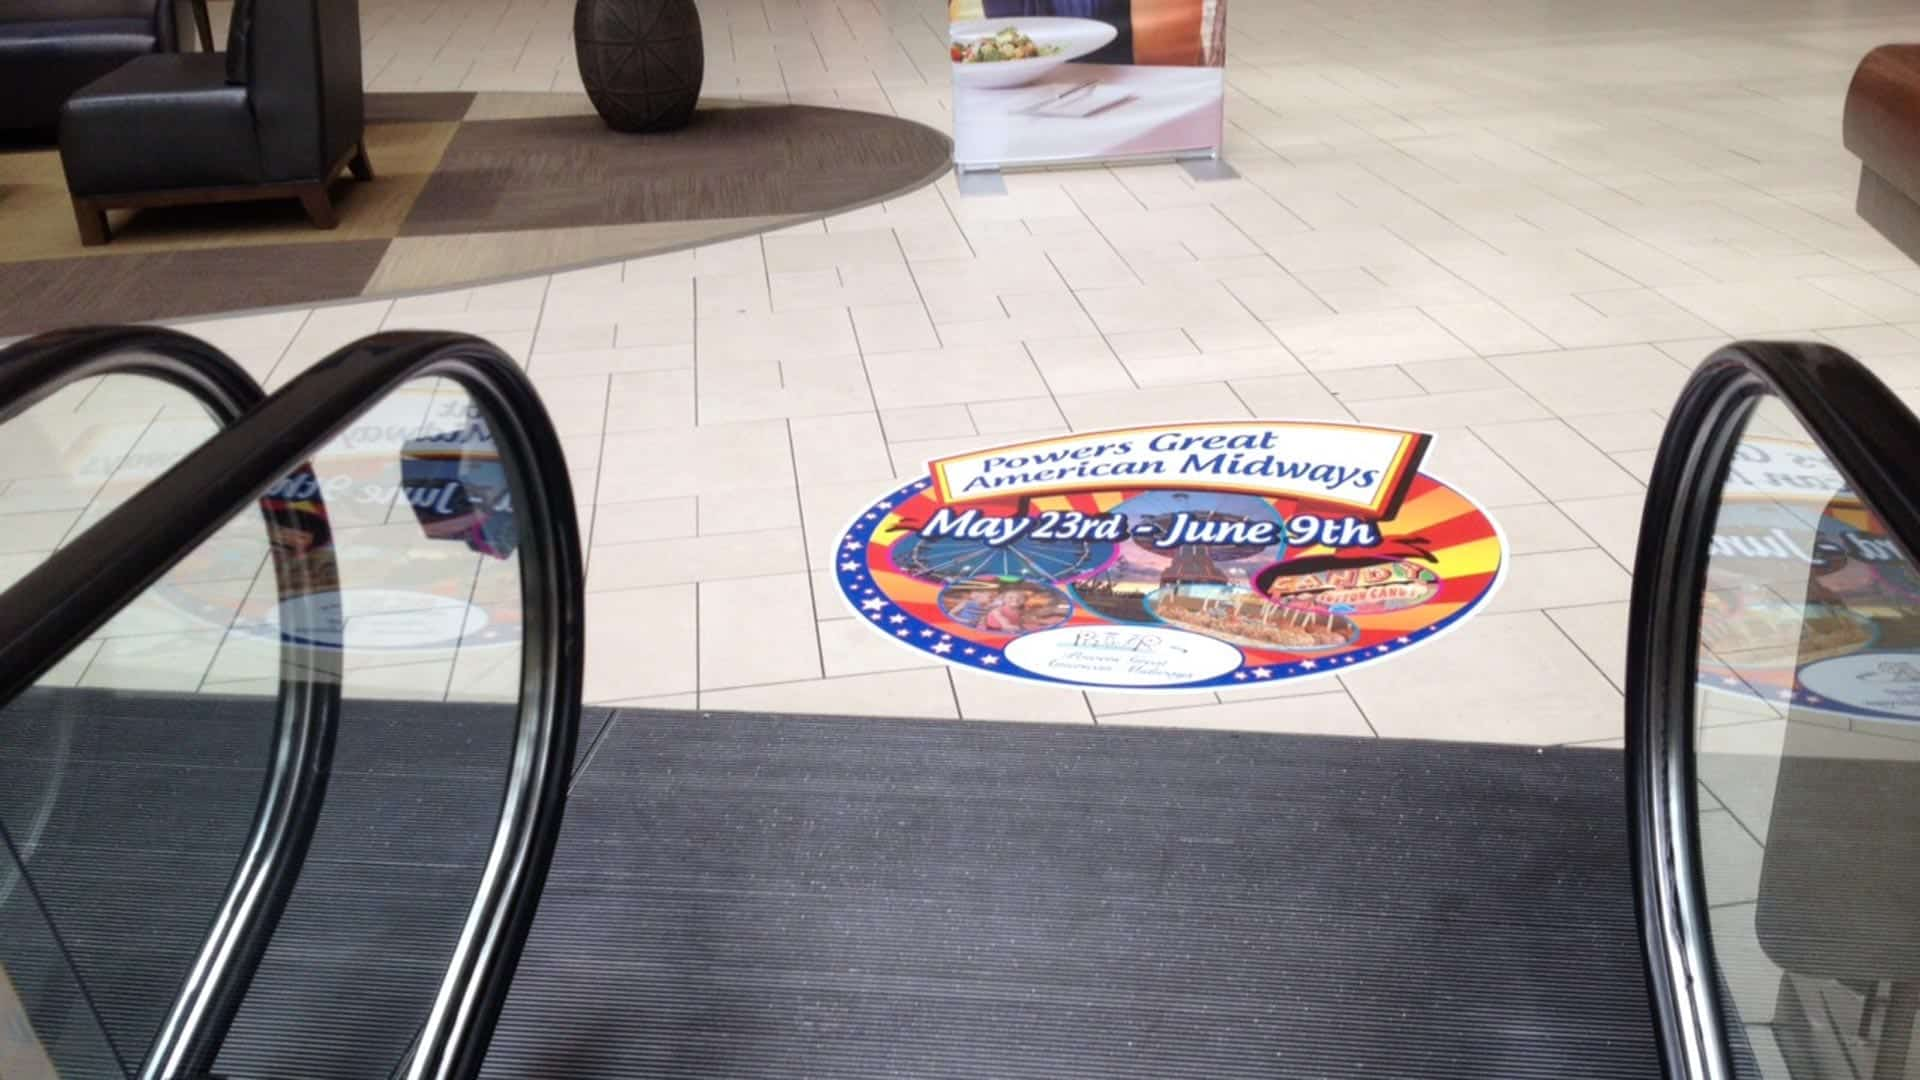 Floor graphic inside a mall